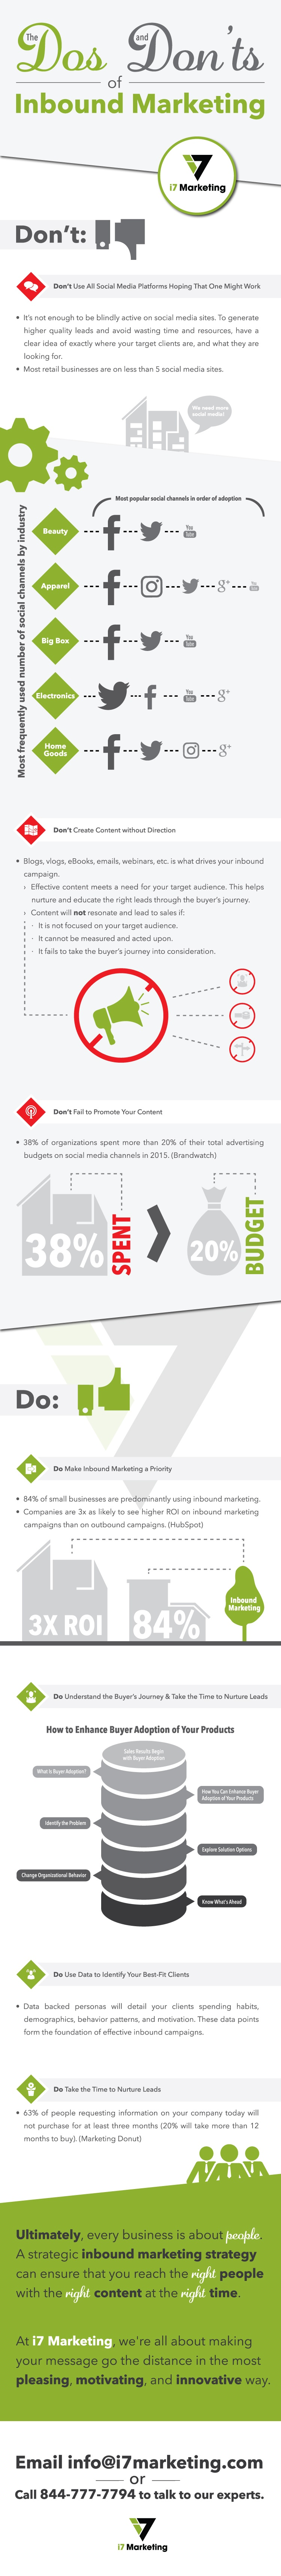 Long infographic of the Do's and Don'ts of Inbound Marketing